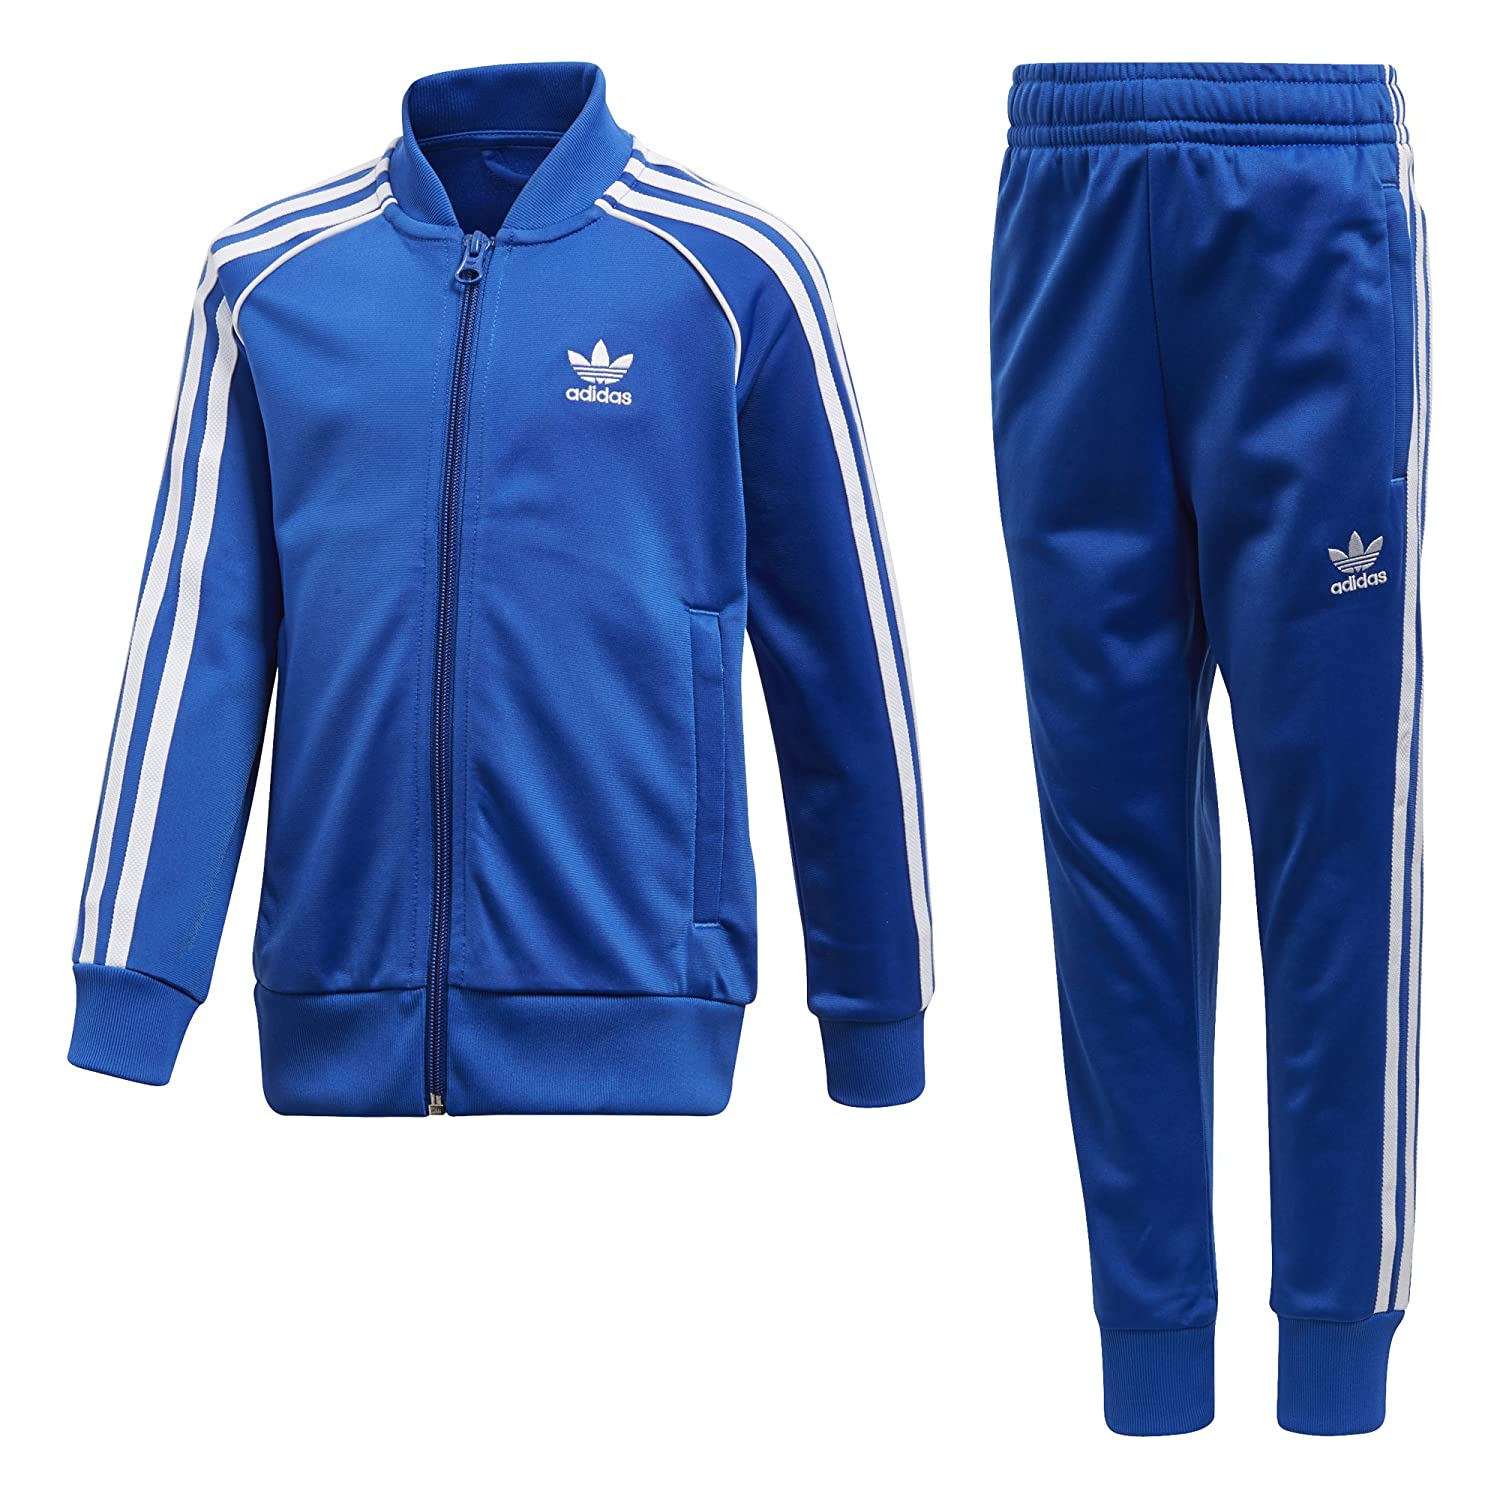 Adidas ORIGINALS Boys Little Boys Trefoil SST Track Suit CD8442